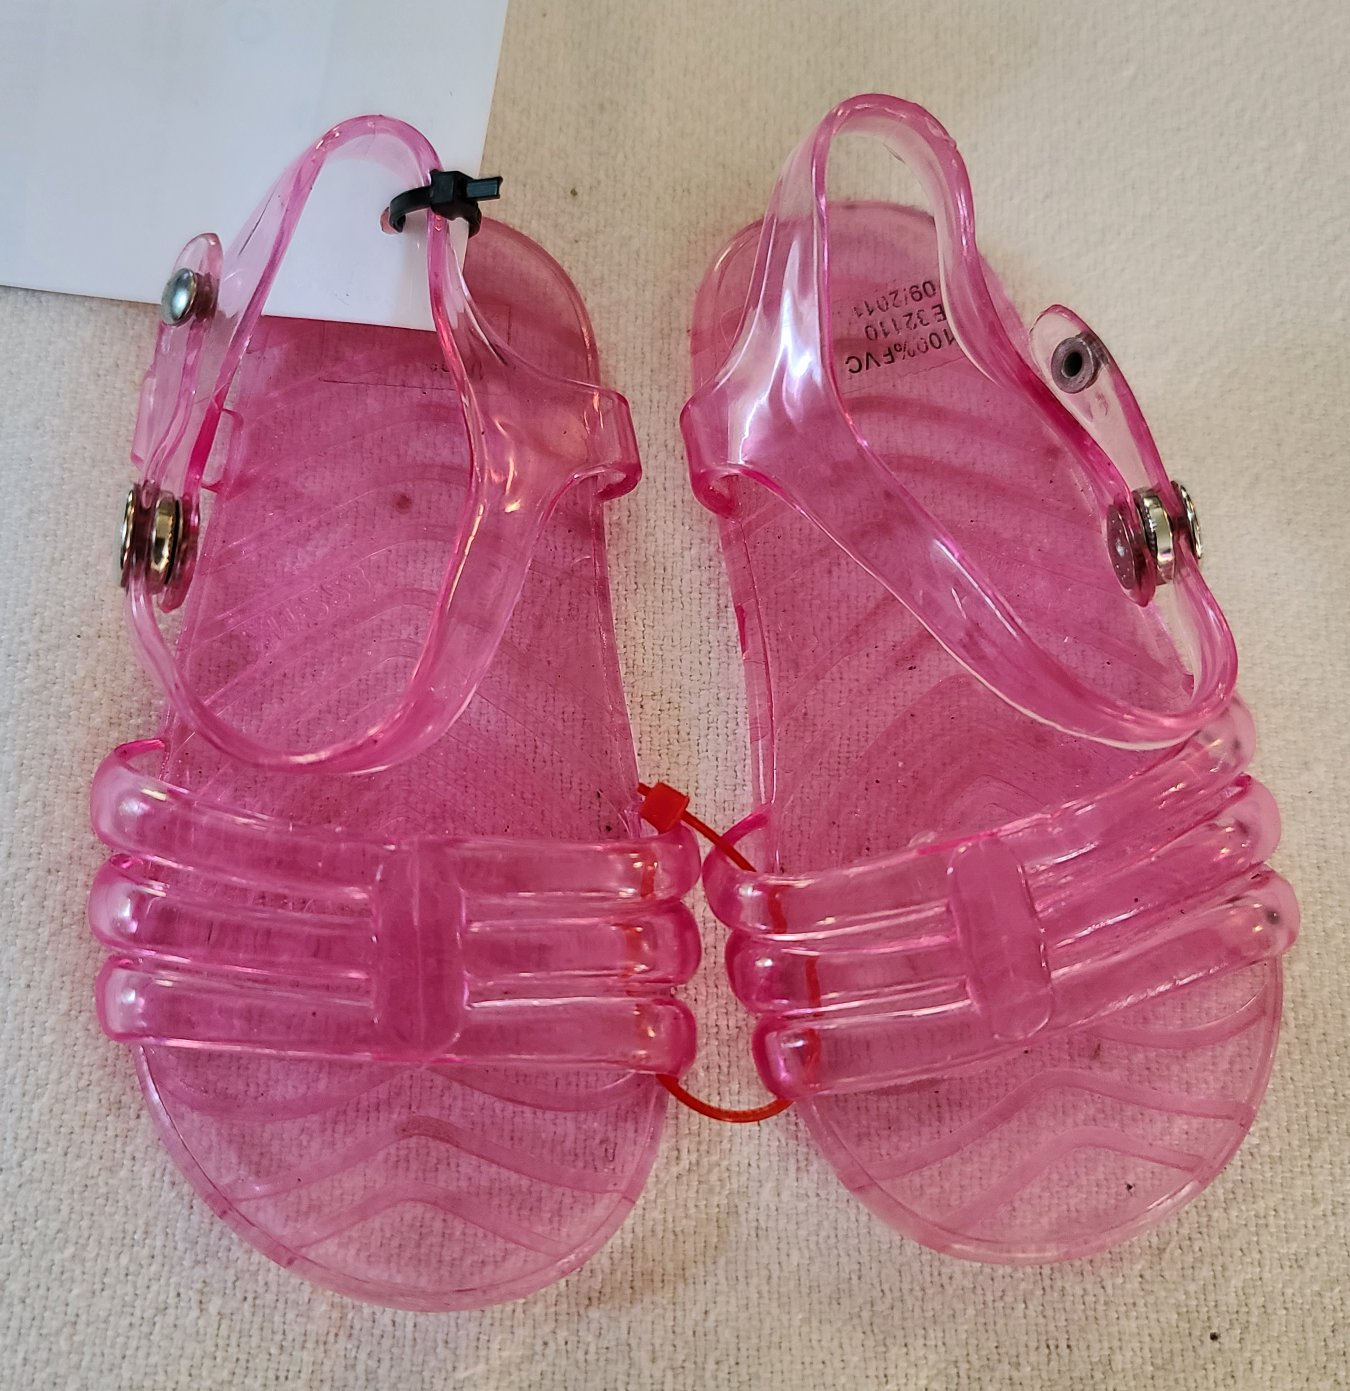 Pink jelly sandals, Infant girls size 6-12 months